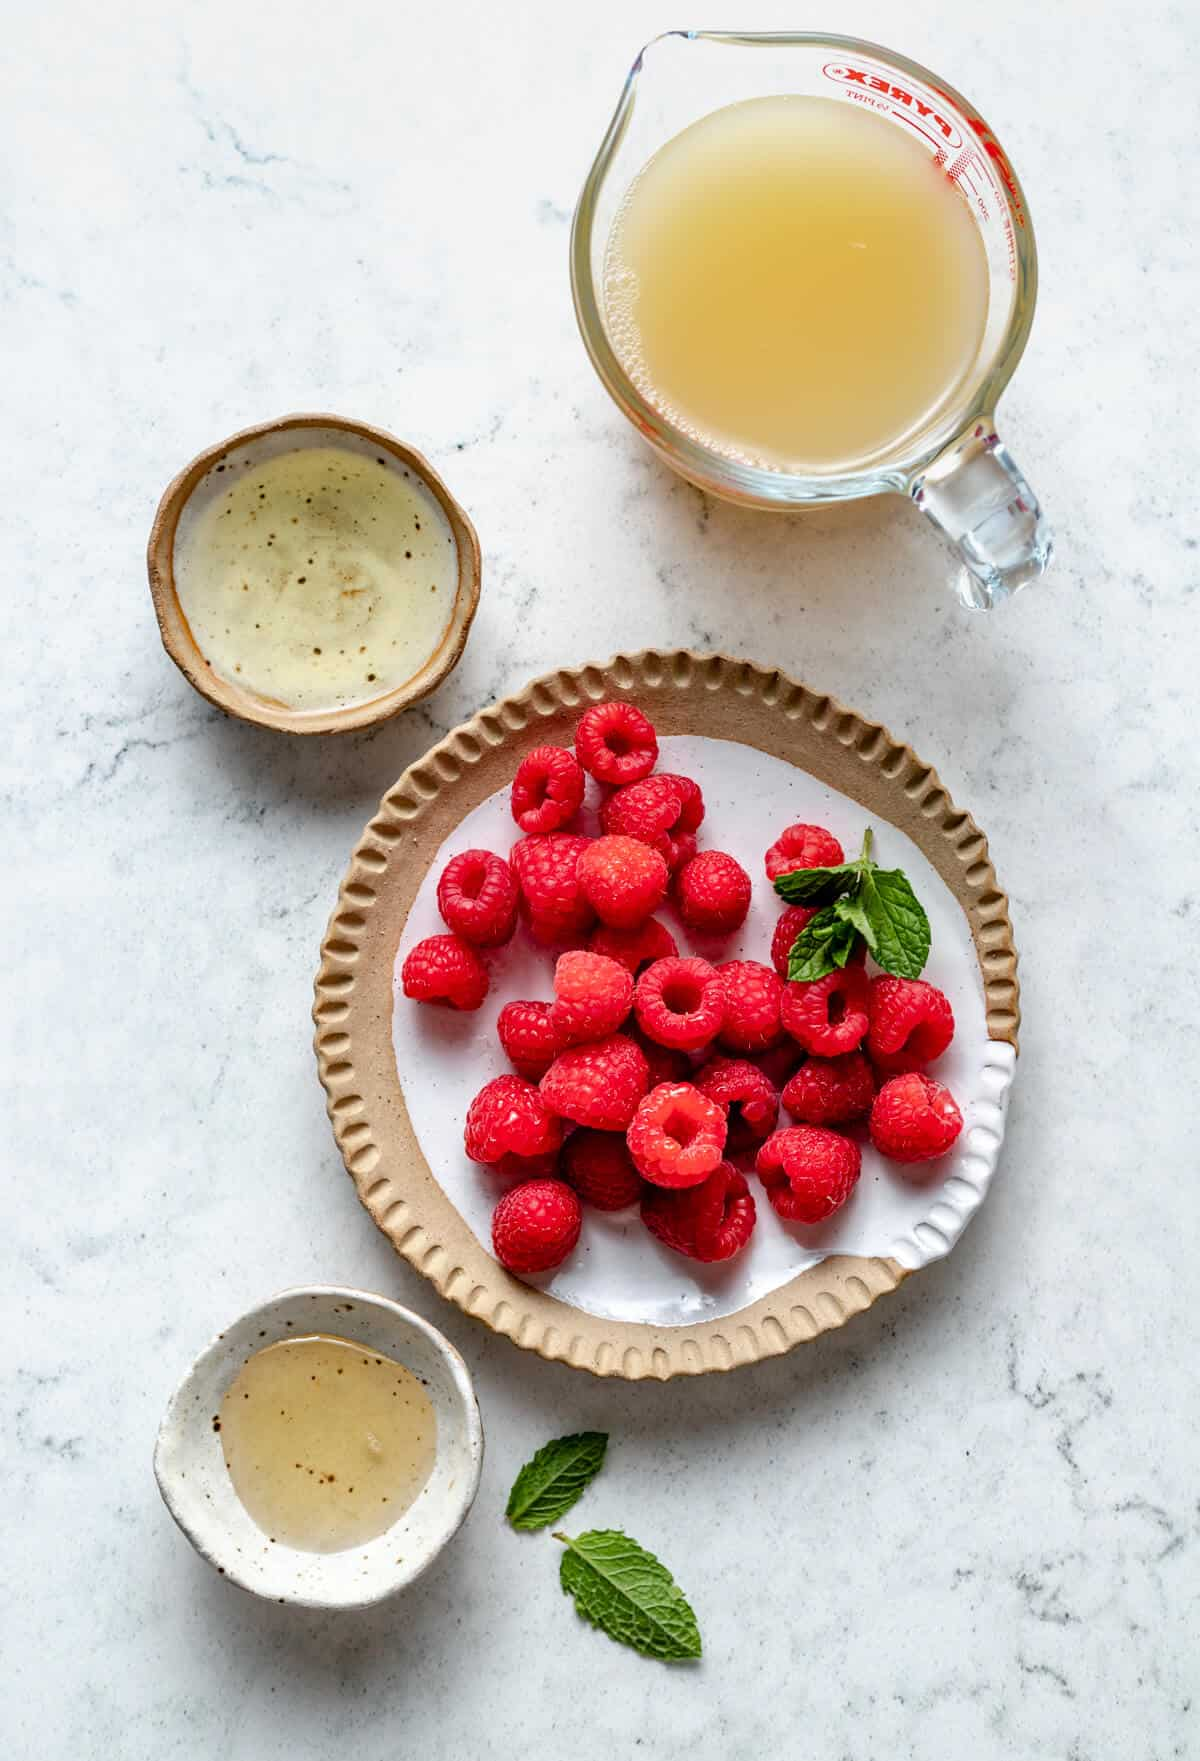 rapsberries, agave nectar, apple cider vinegar and apple juice in various jugs and bowls